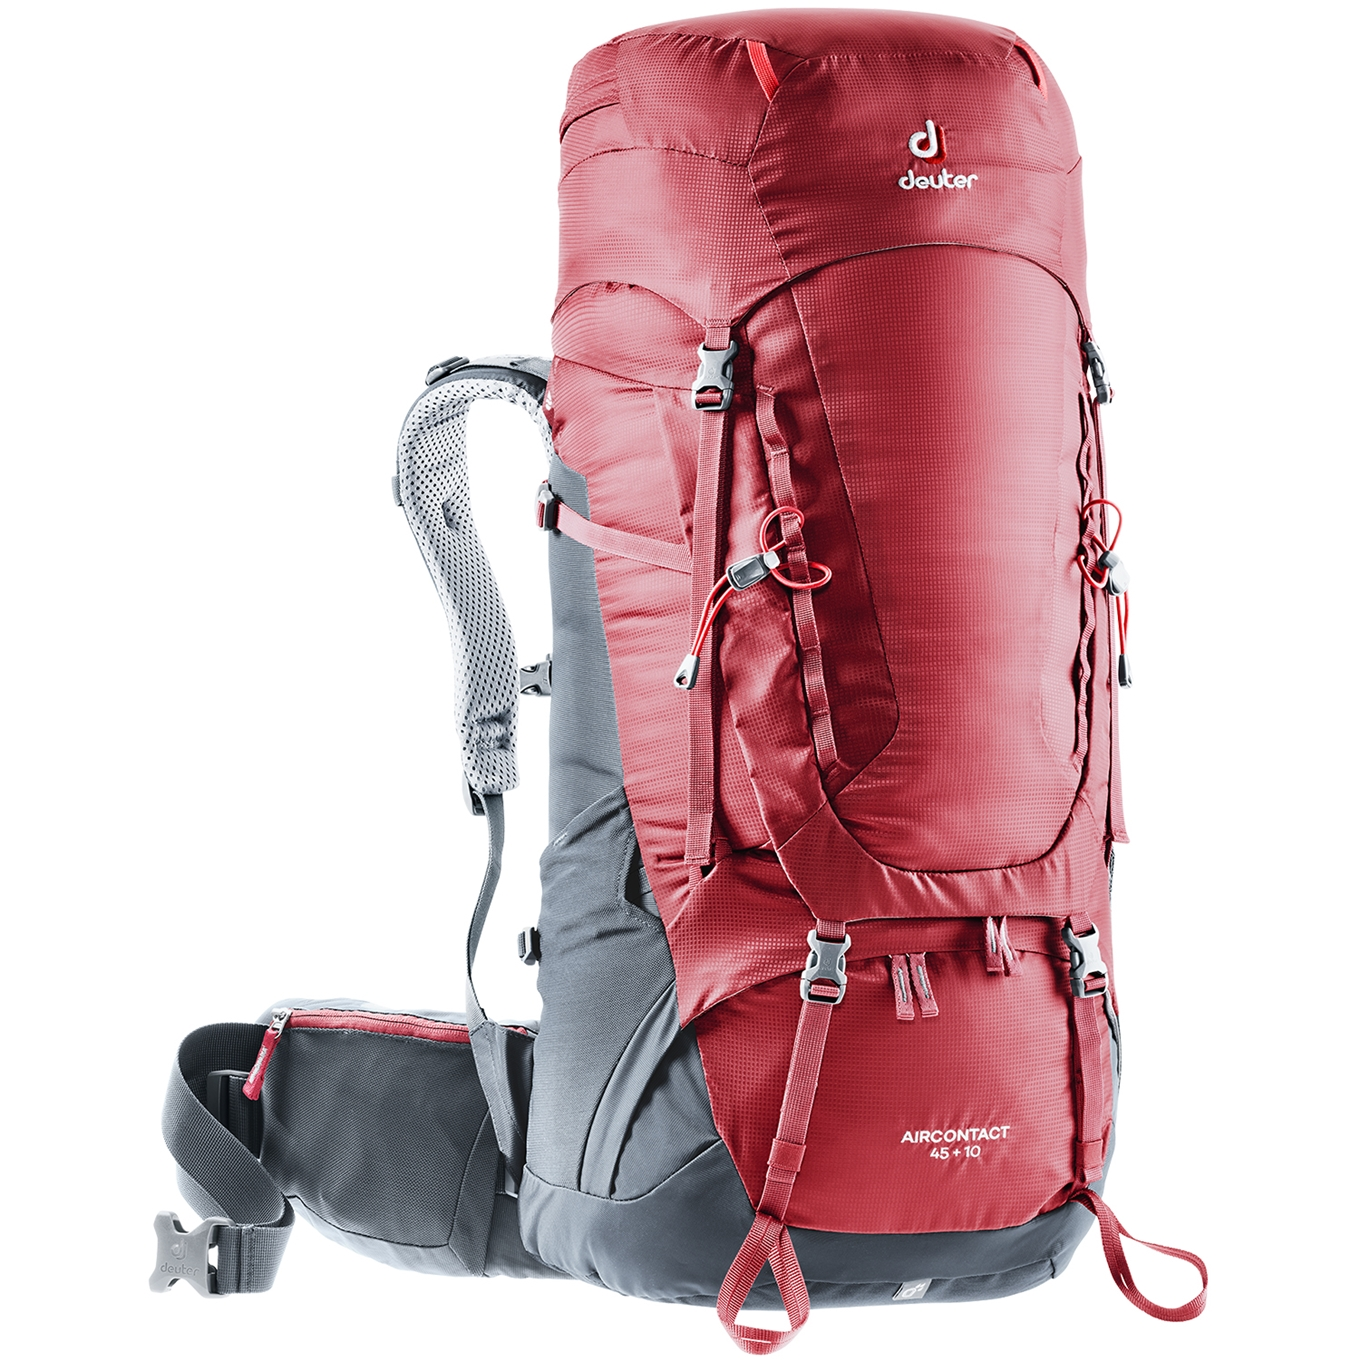 Deuter Aircontact 45 + 10 Backpack cranberry/graphite backpack